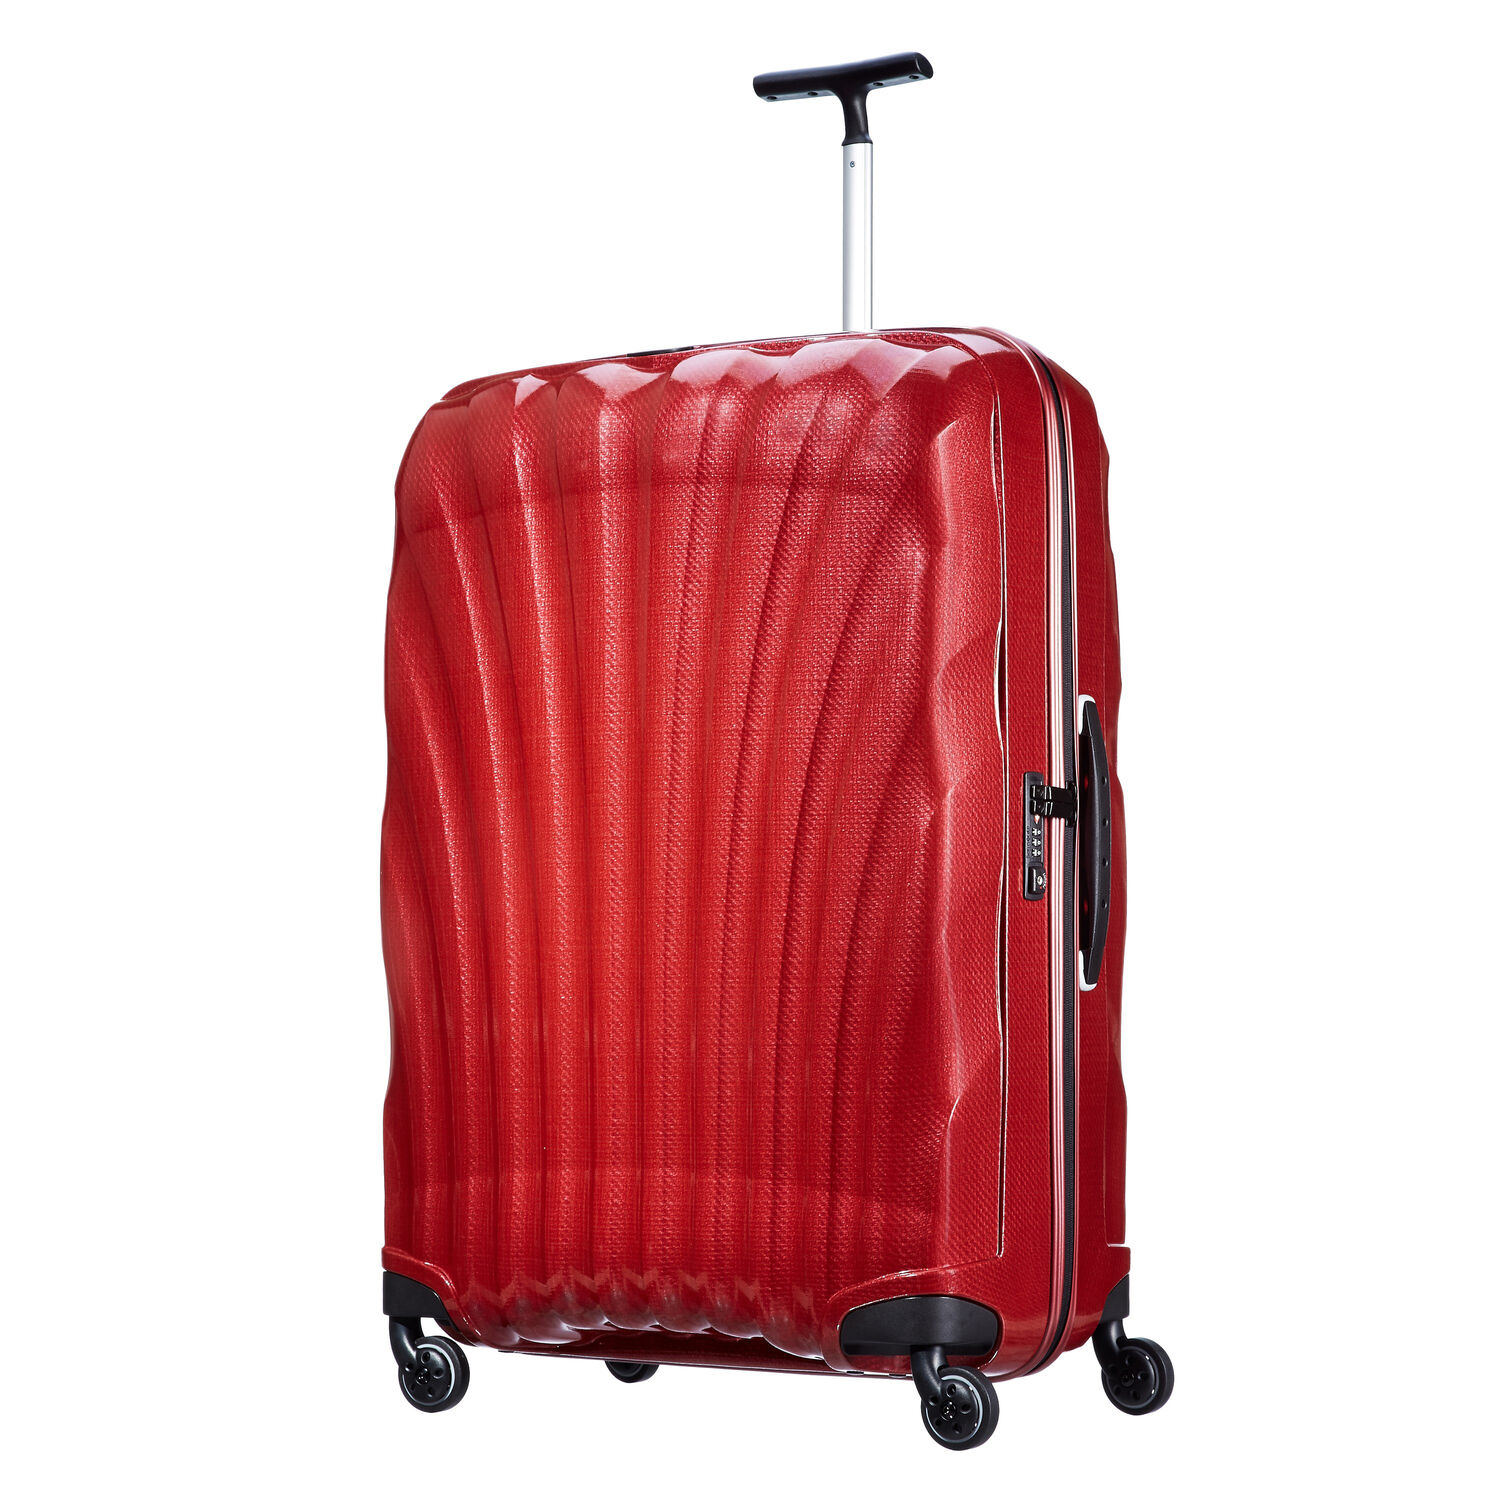 Shop for Samsonite luggage and suitcases at eBags - experts in bags and accessories since We offer easy returns, expert advice, and millions of customer reviews.